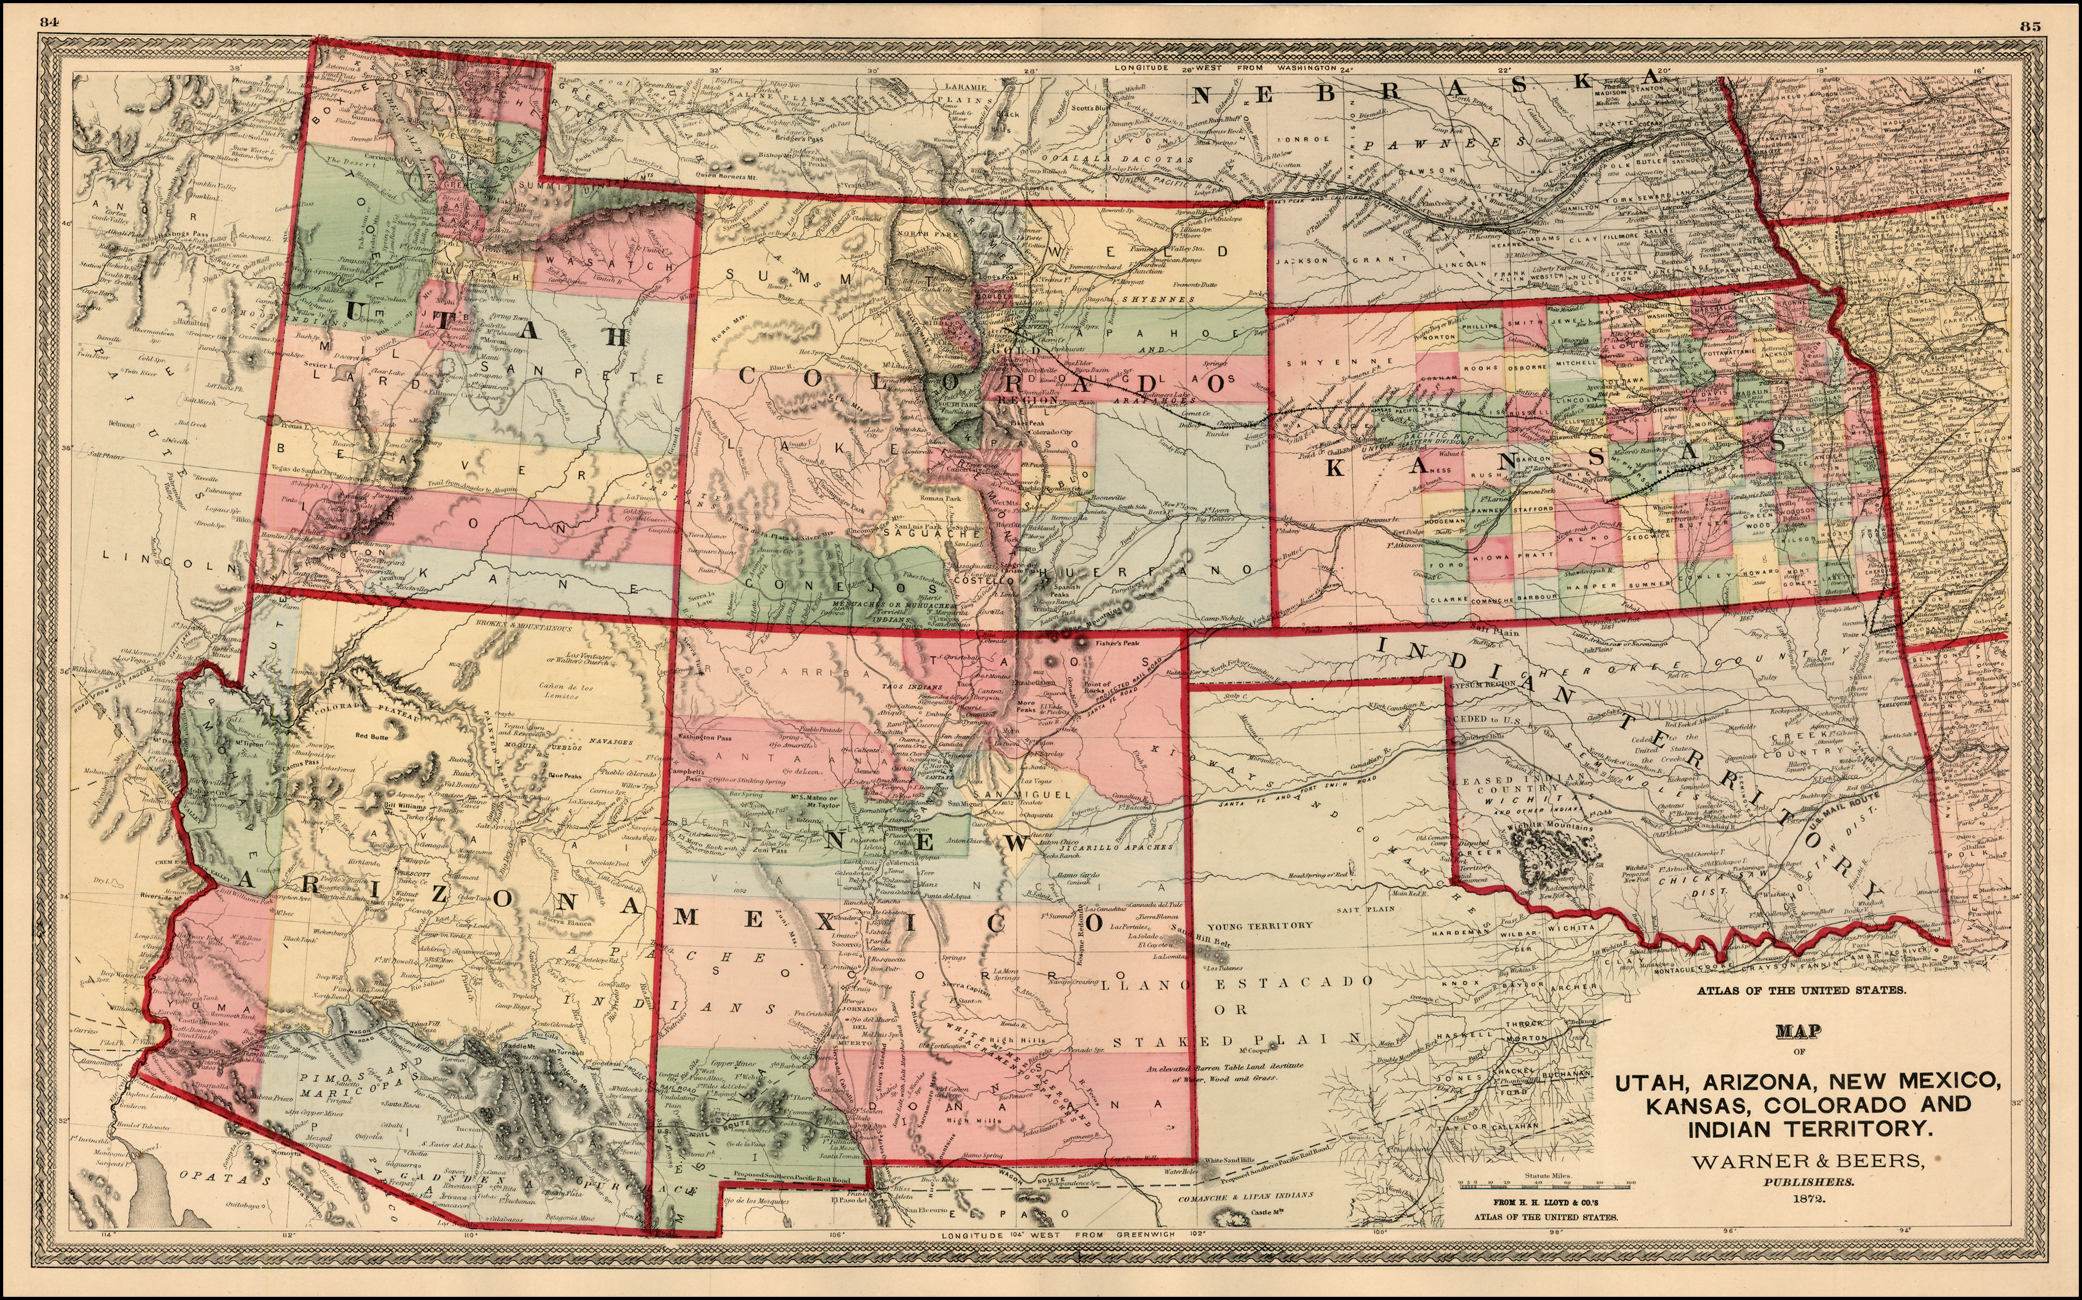 Map Of Arizona Utah And Colorado.Map Of Utah Arizona New Mexico Kansas Colorado And Indian